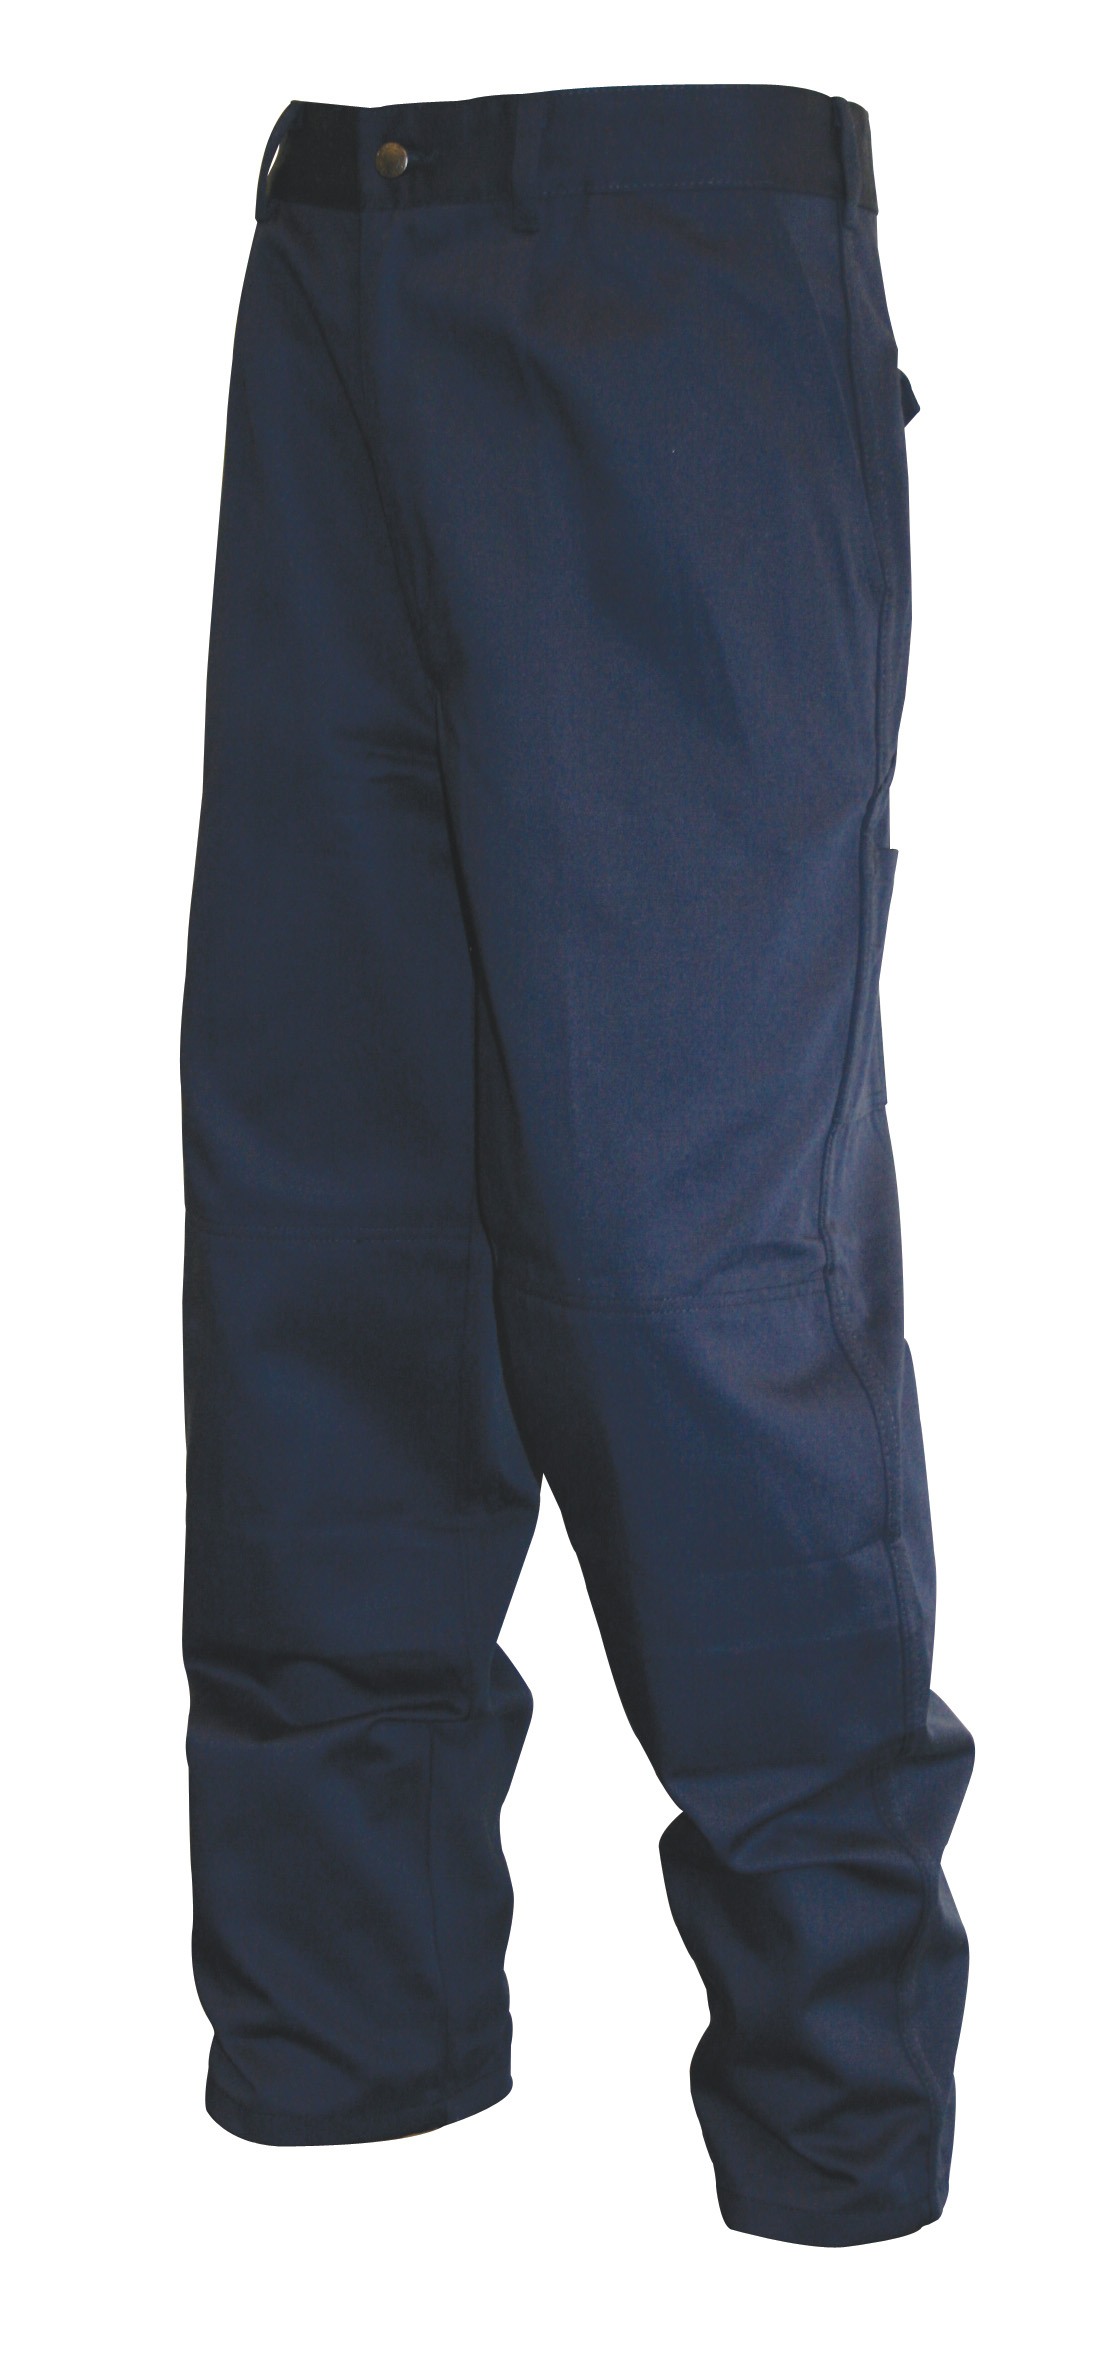 Heavyweight Drivers Trousers in Navy & Black